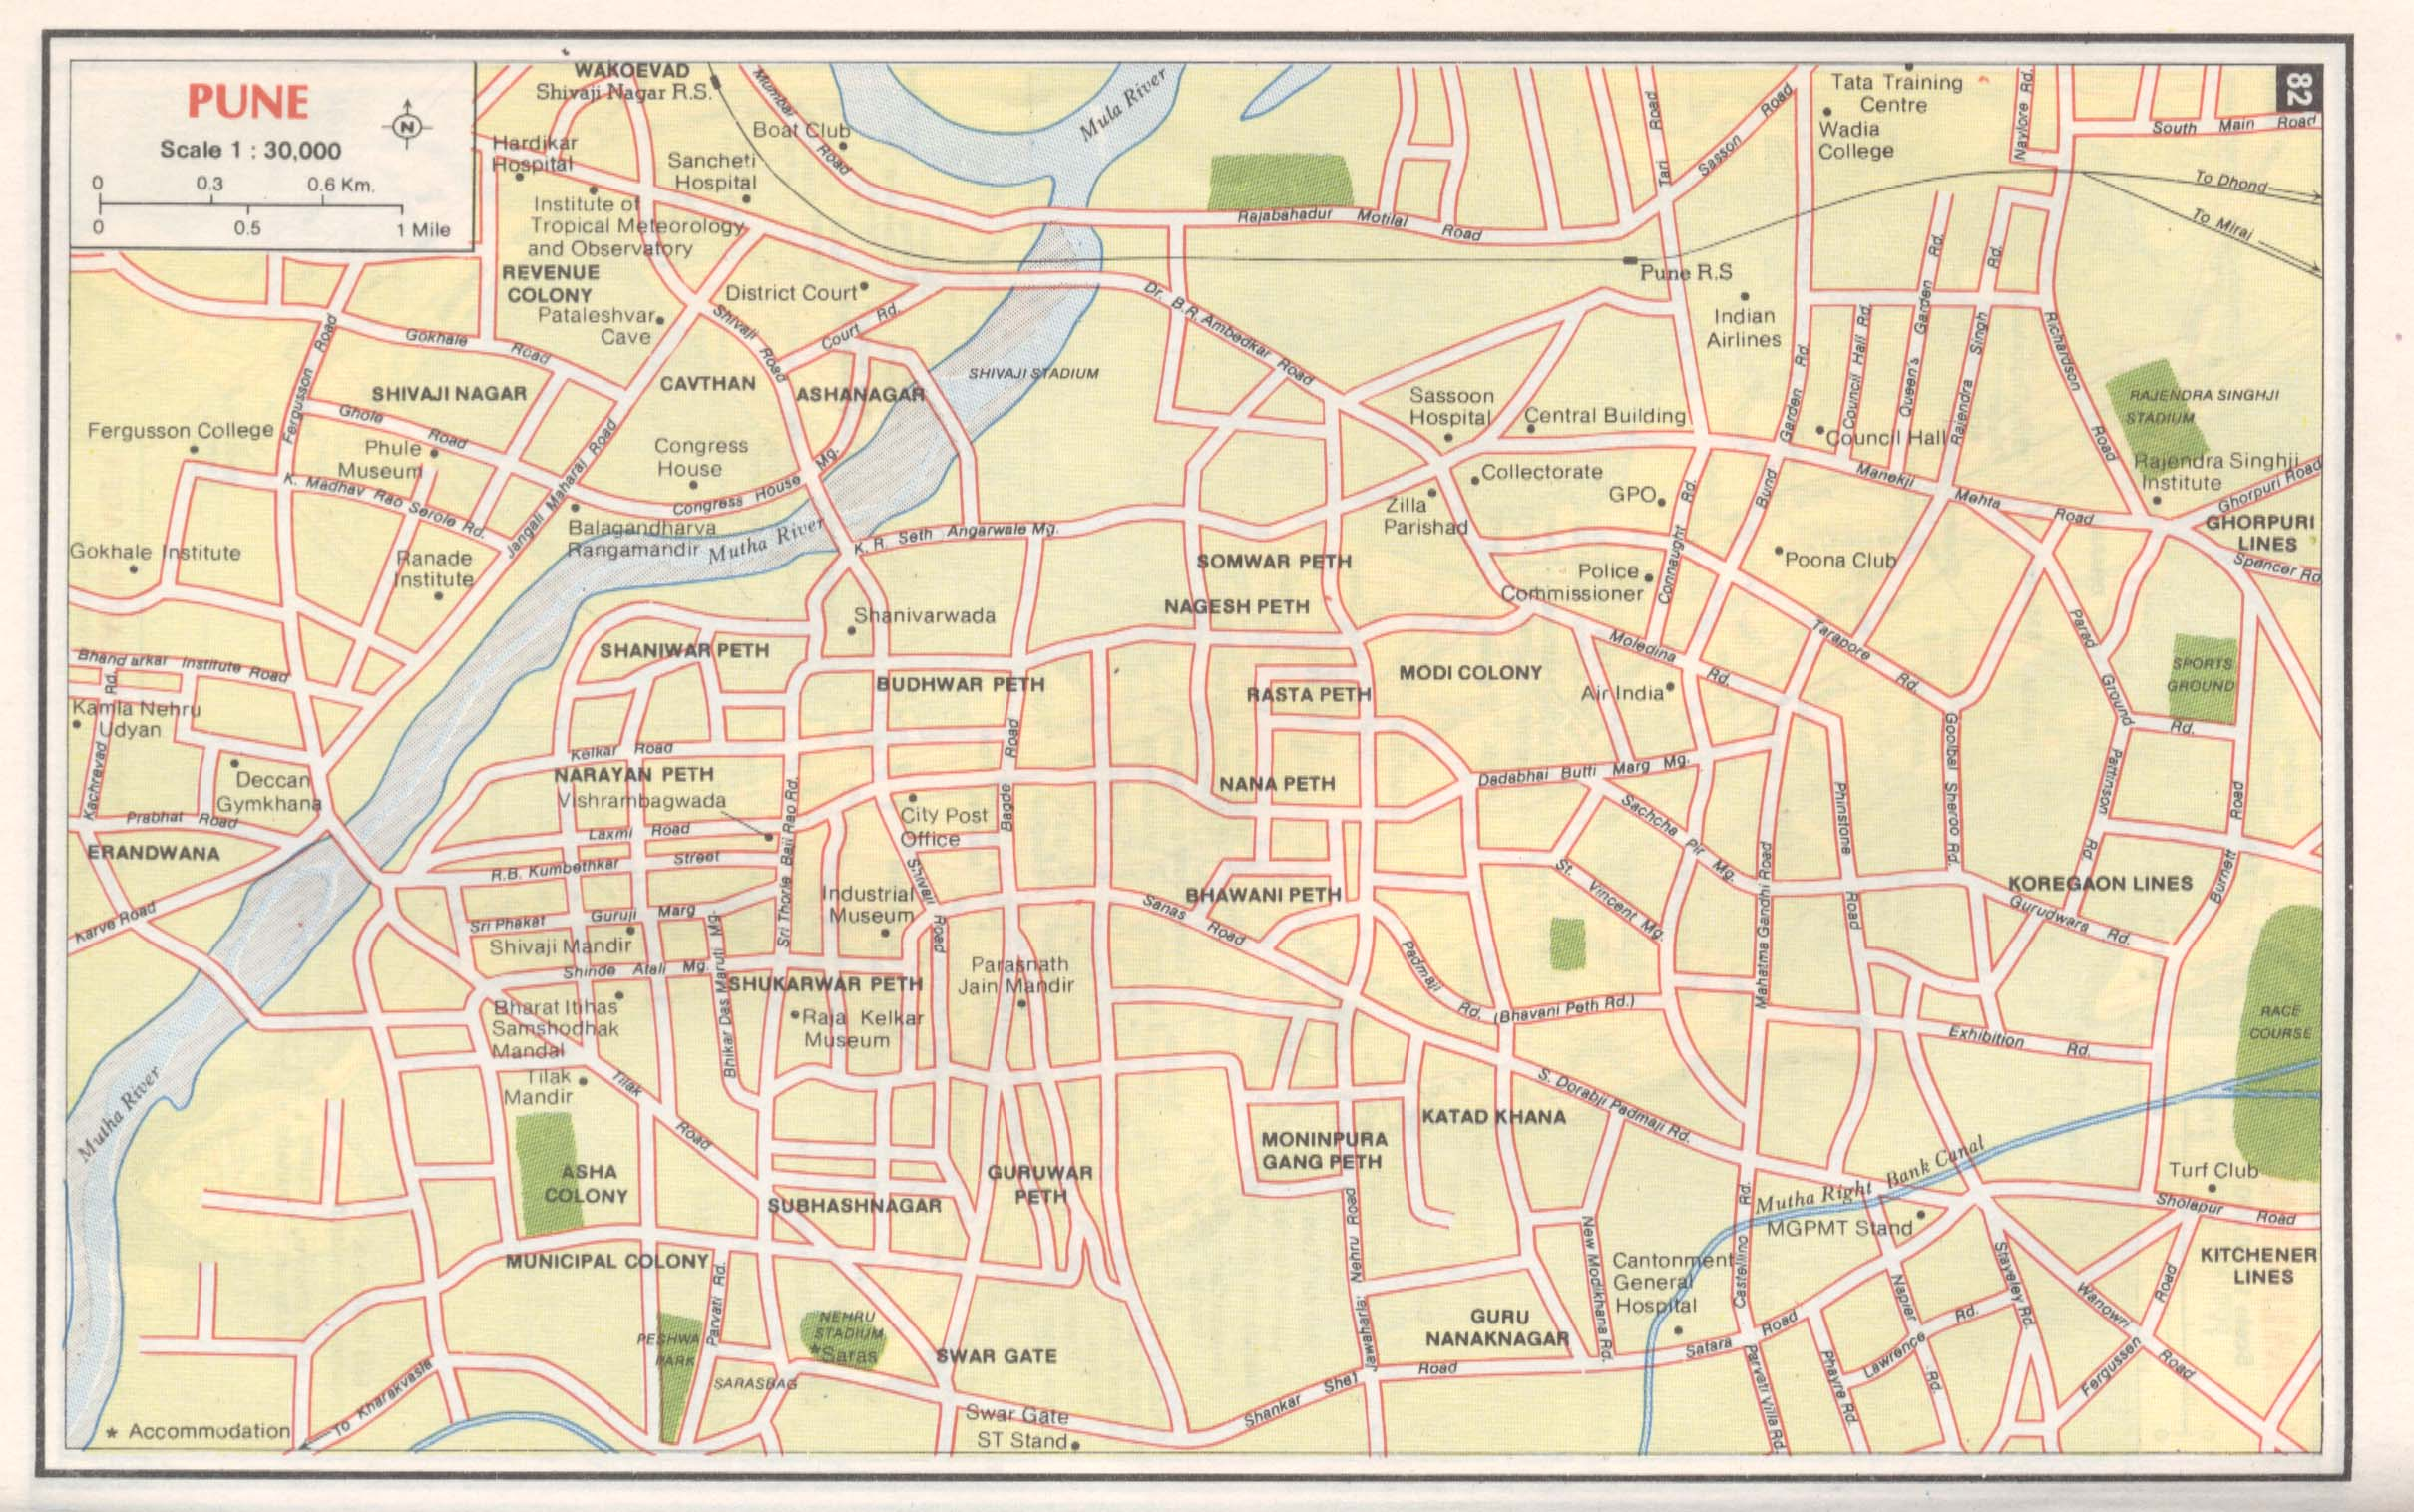 Pune City Map